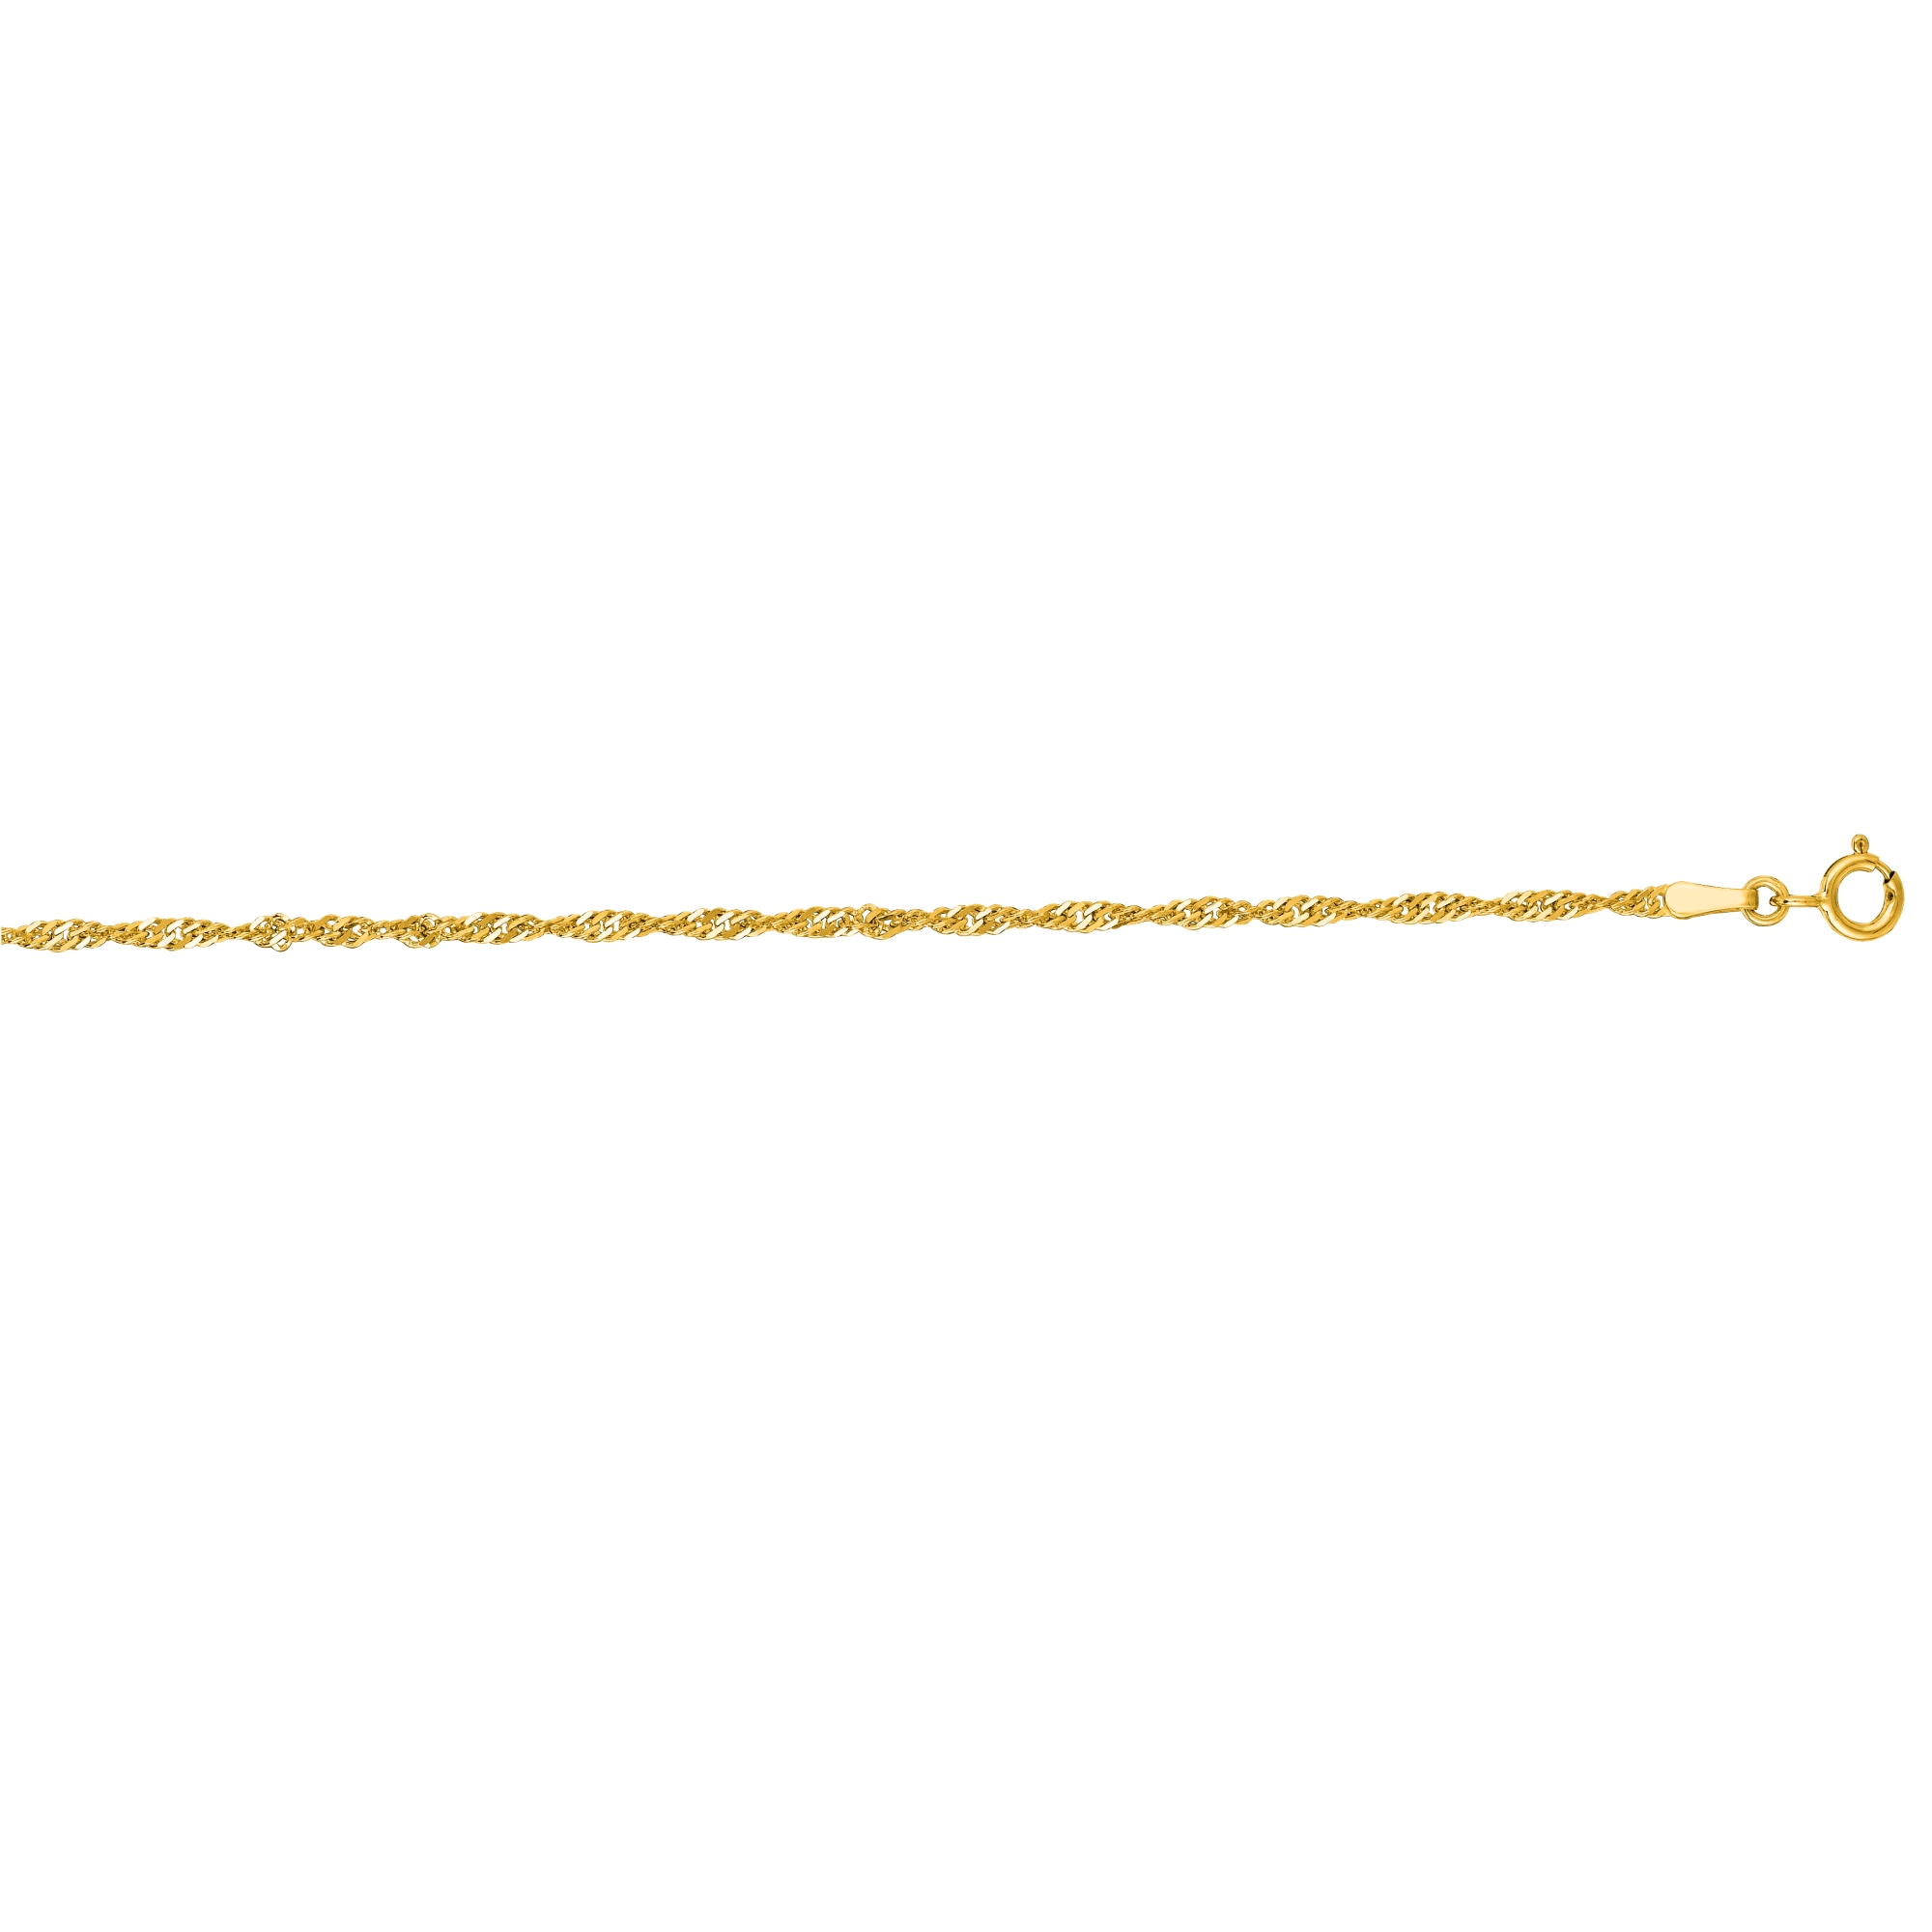 Jewelryweb 14k 7 Inch 1.7mm Yellow Gold Singapore Chain Bracelet at Sears.com